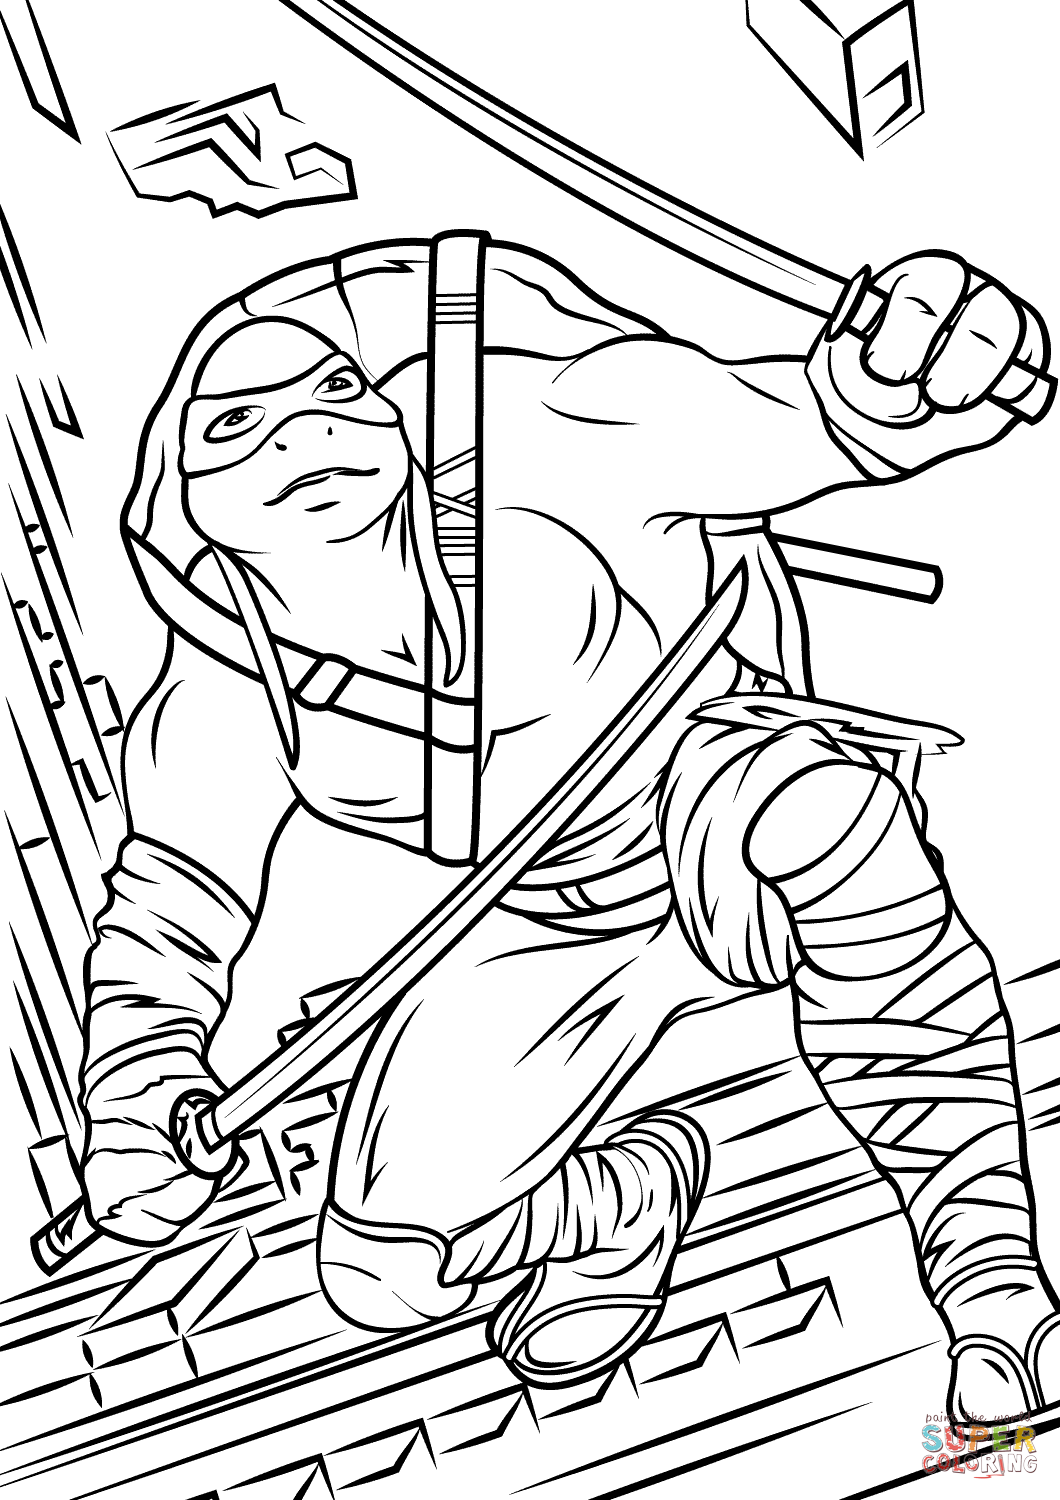 tmnt coloring games donatello and o39neil coloring page free printable tmnt coloring games